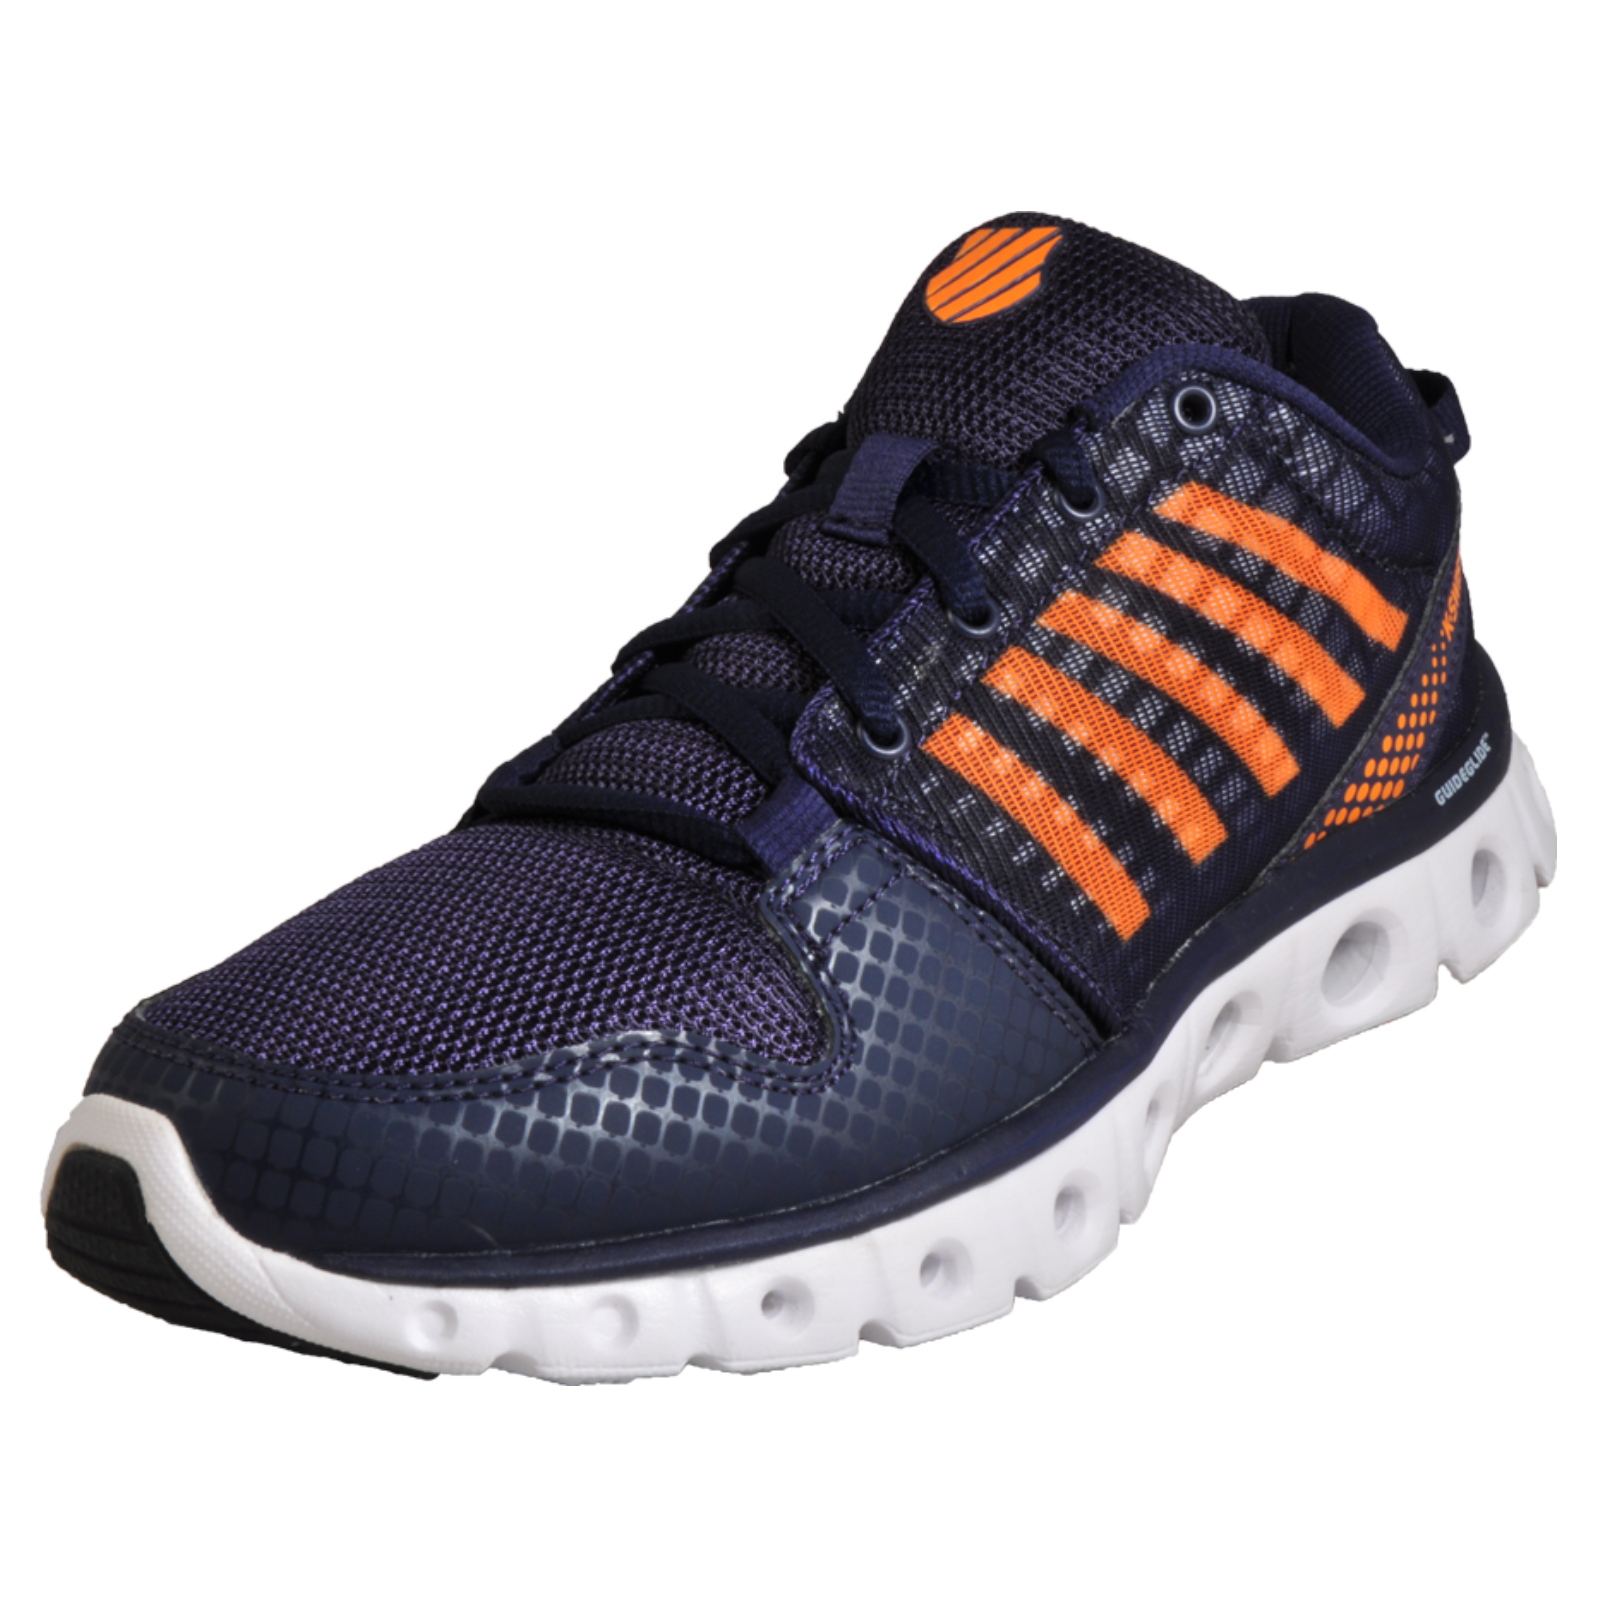 99990eb6625b K Swiss X Lite ST CMF Men s Memory Foam Running Shoes Gym Trainers Navy